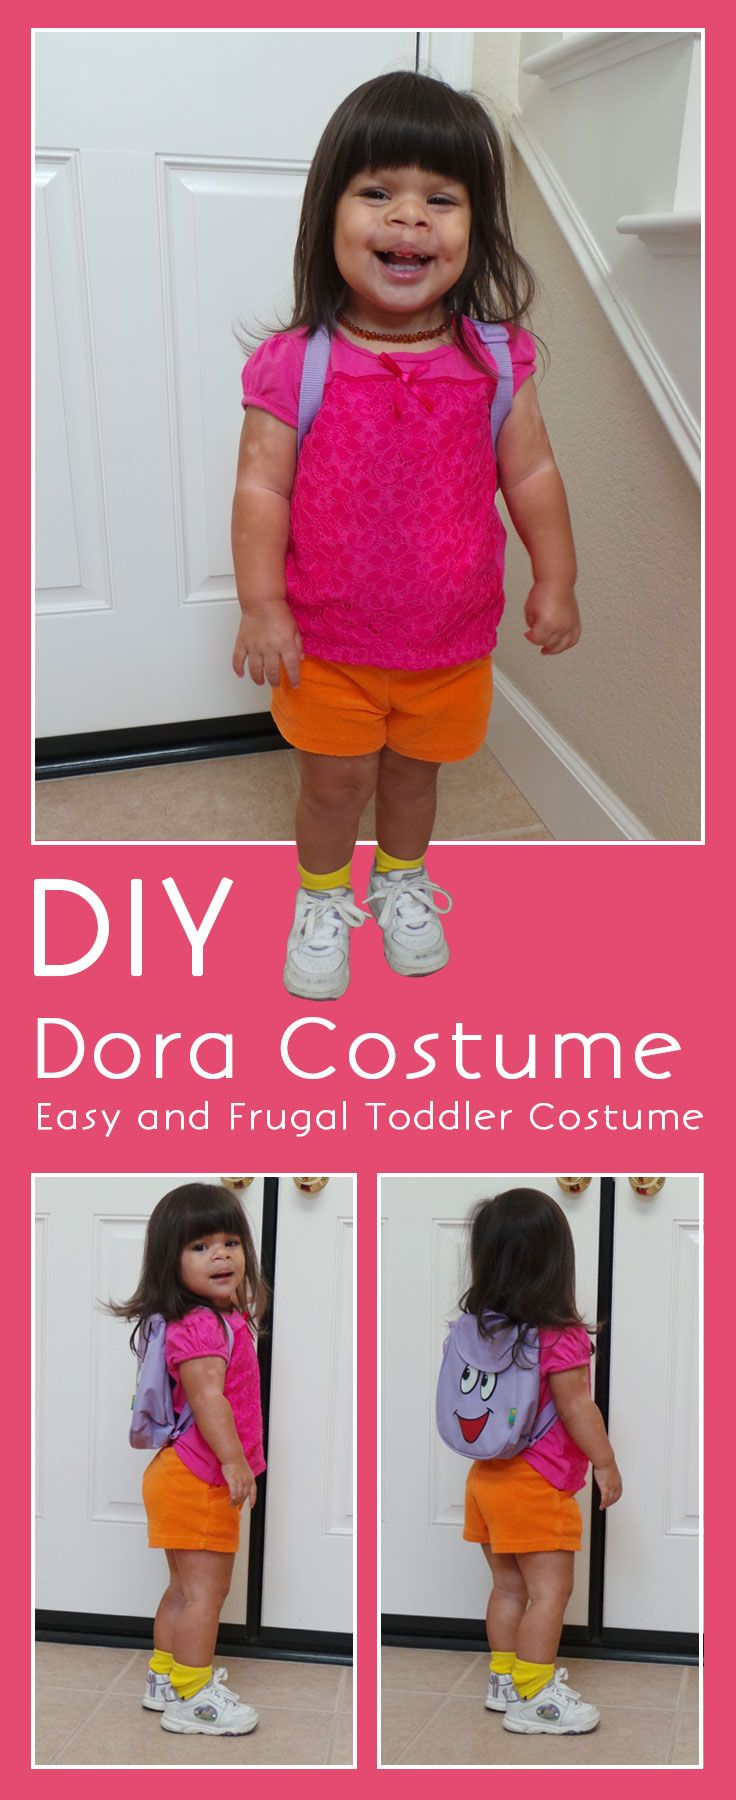 Easy DIY Dora Halloween costume - we used every day pieces to make a super cute costume for our little Dora fan to trick or treat!